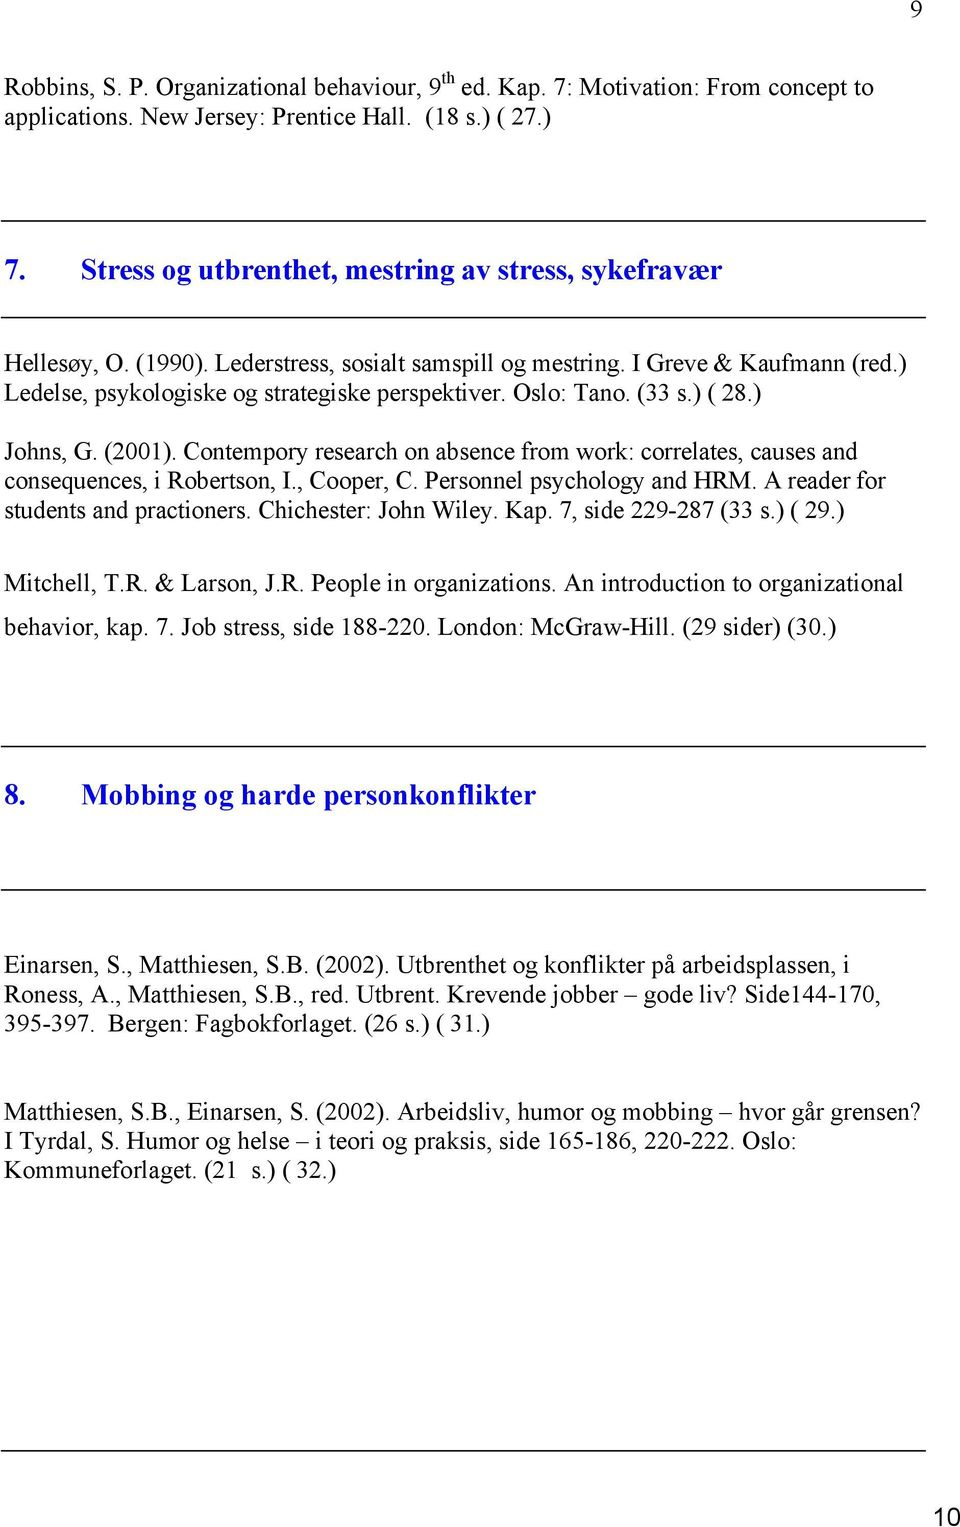 Oslo: Tano. (33 s.) ( 28.) Johns, G. (2001). Contempory research on absence from work: correlates, causes and consequences, i Robertson, I., Cooper, C. Personnel psychology and HRM.